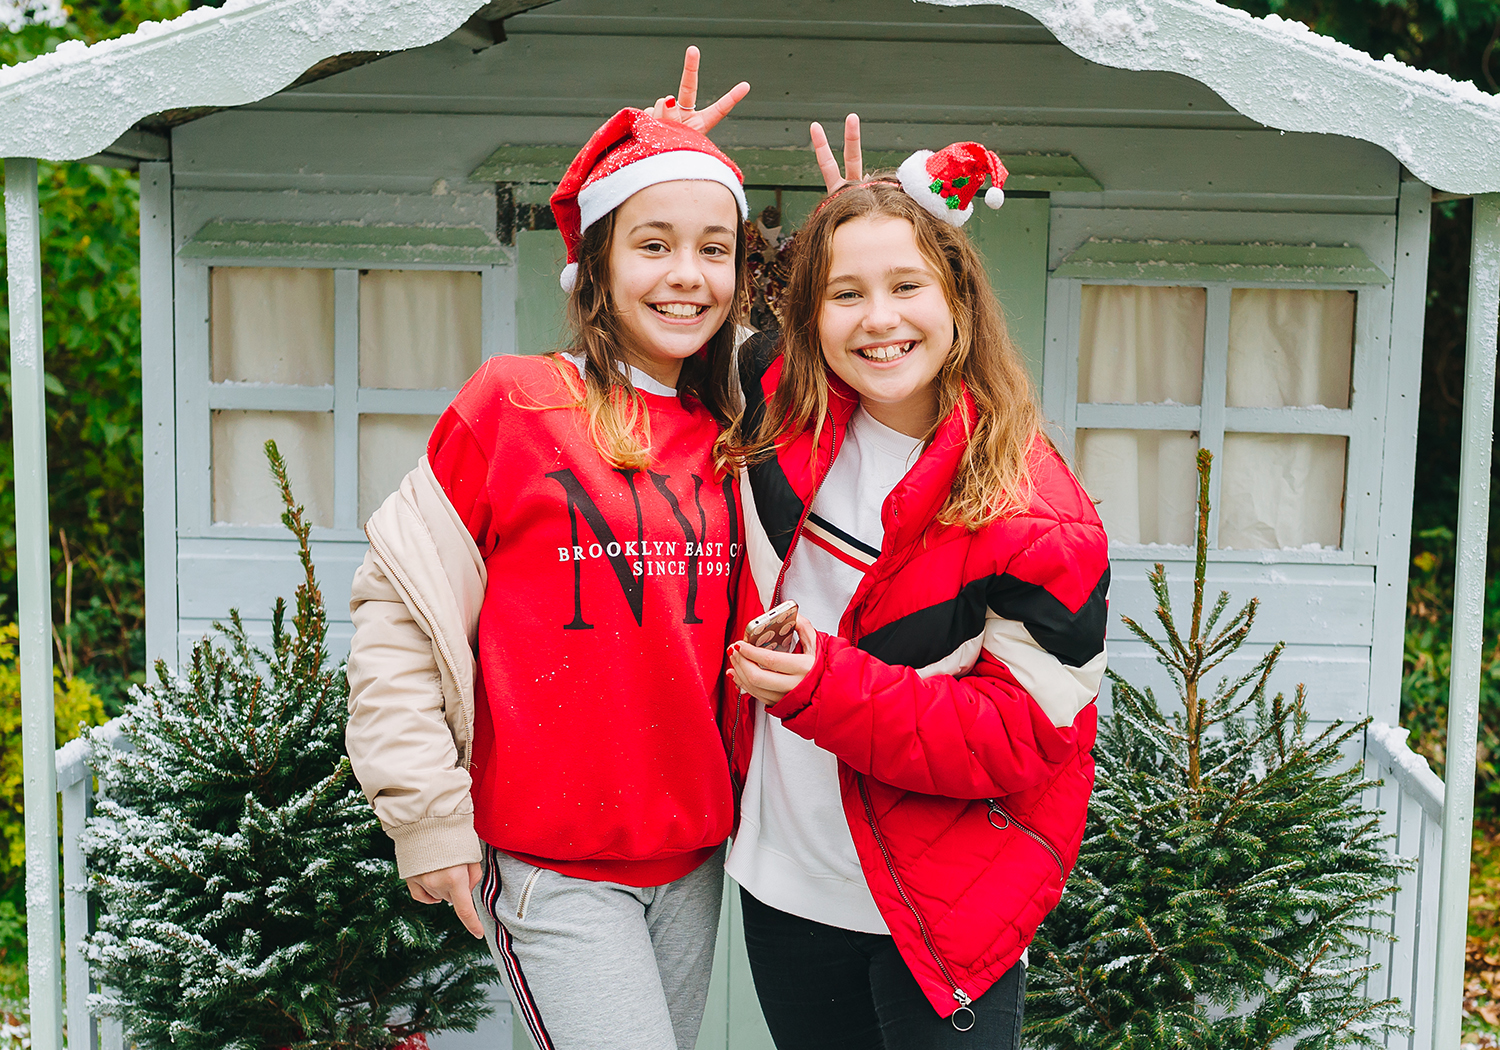 girls smiling in Christmas outfits